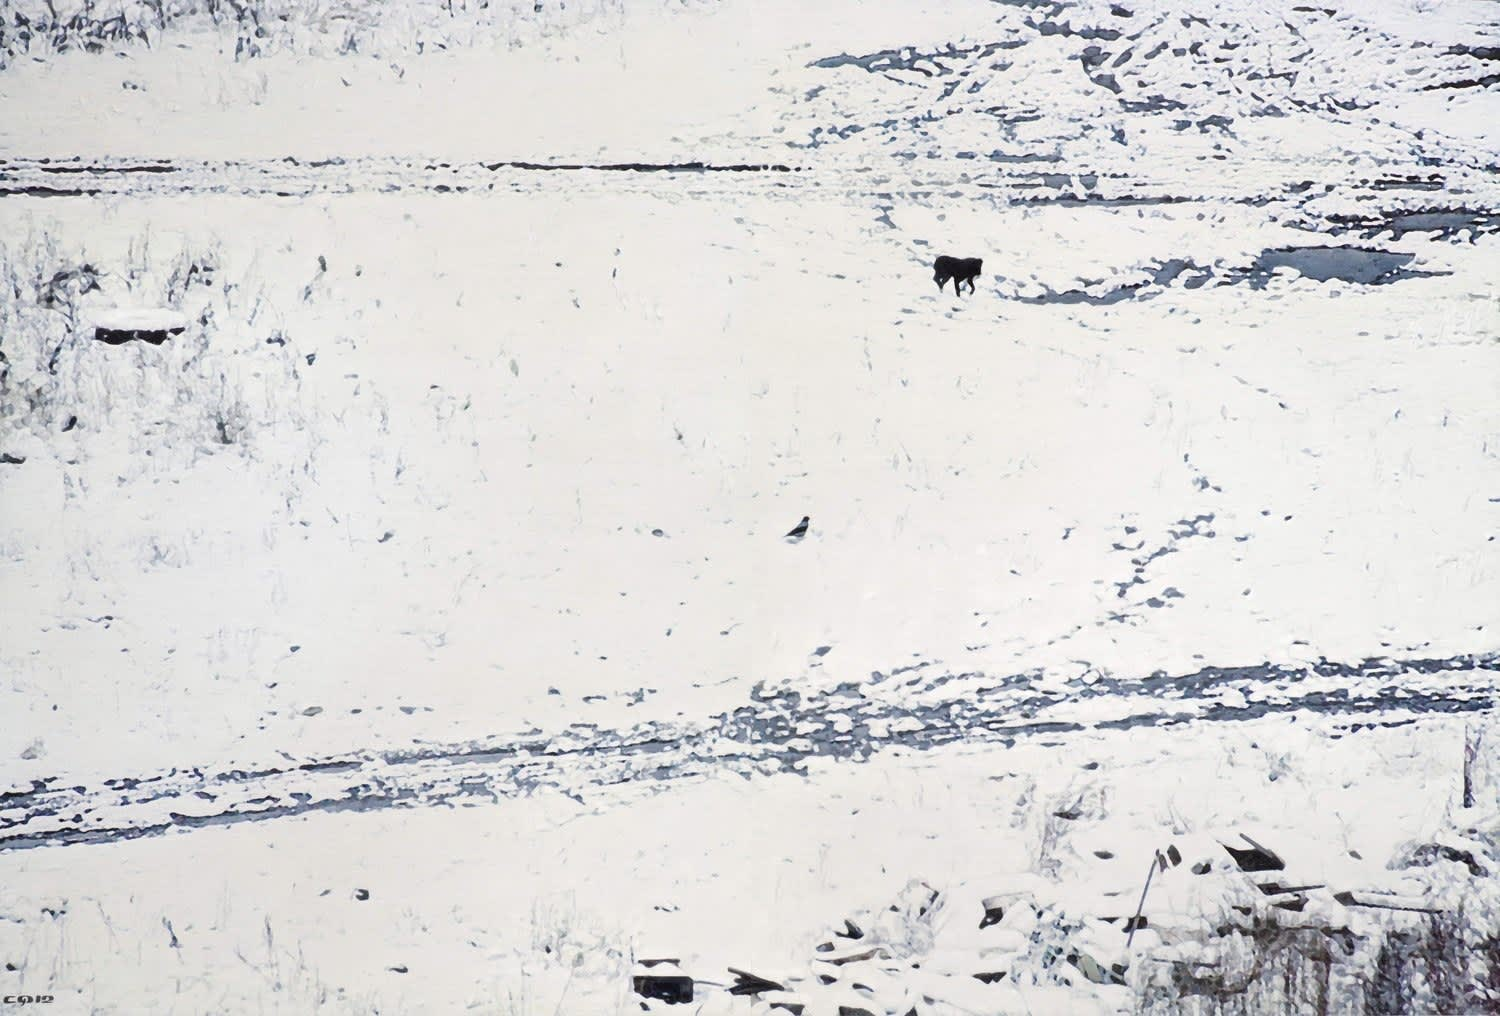 Semyon Faibisovich On the First Snow from the cycle Dog's life, 2012